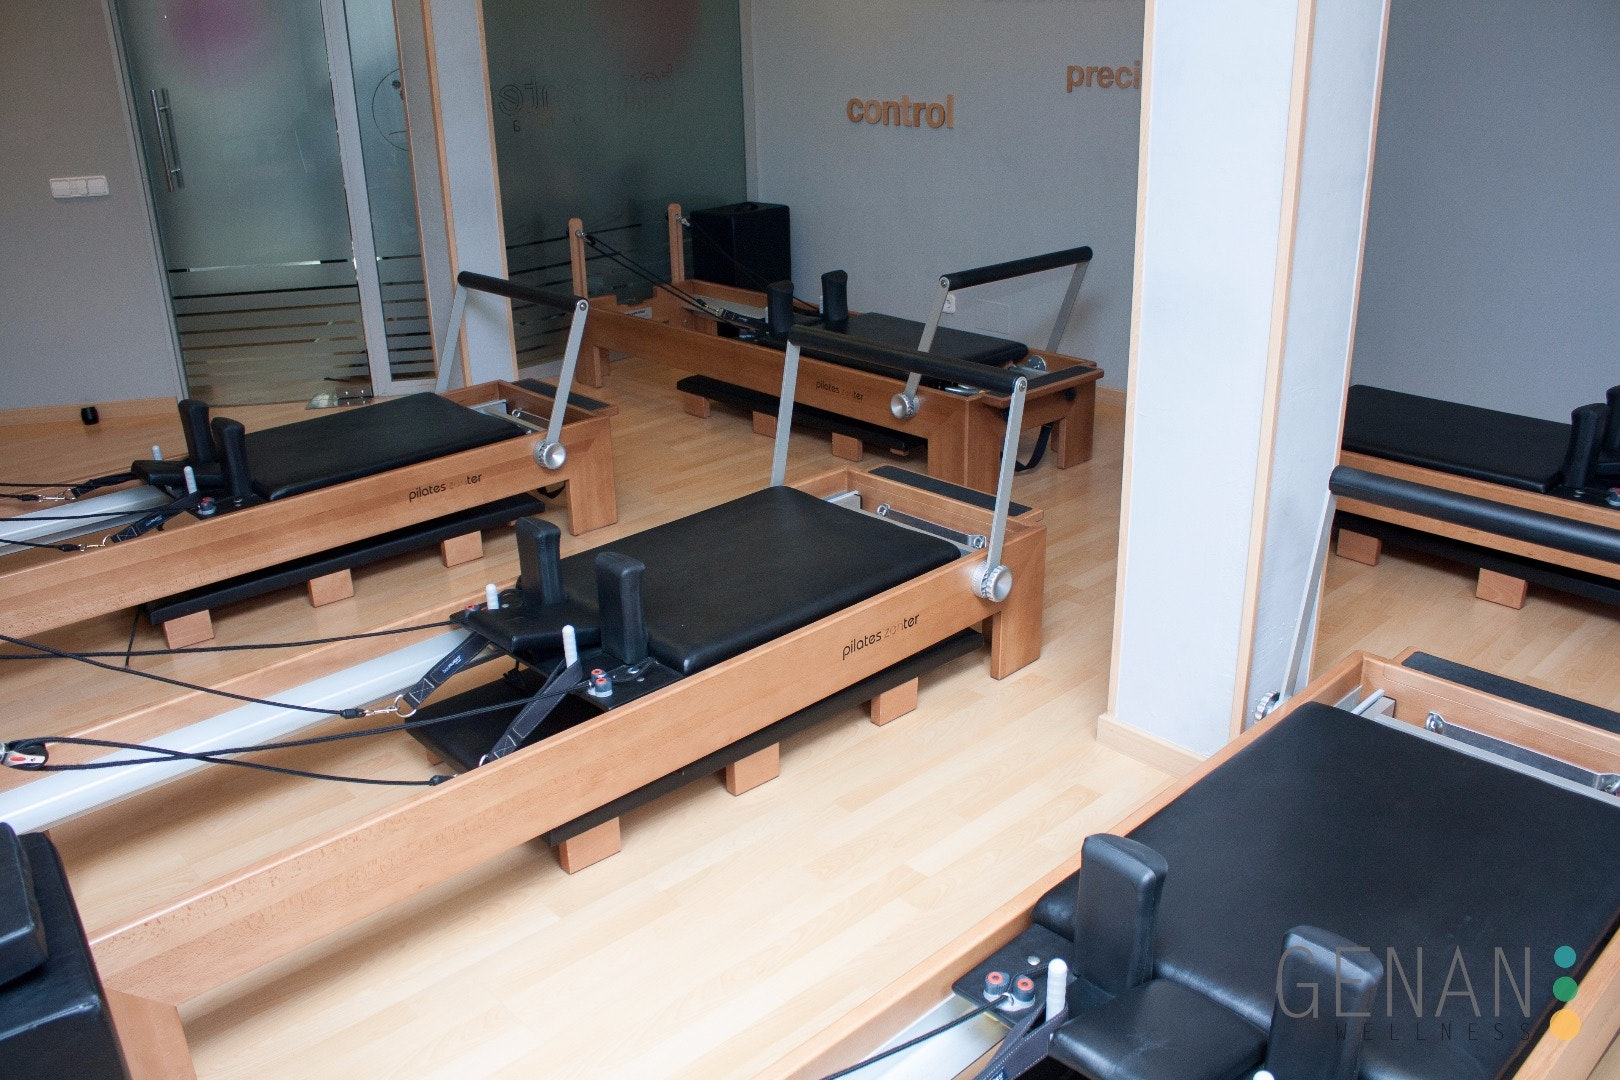 Picture 1 Deals for Gym Genan Wellness Barcelona